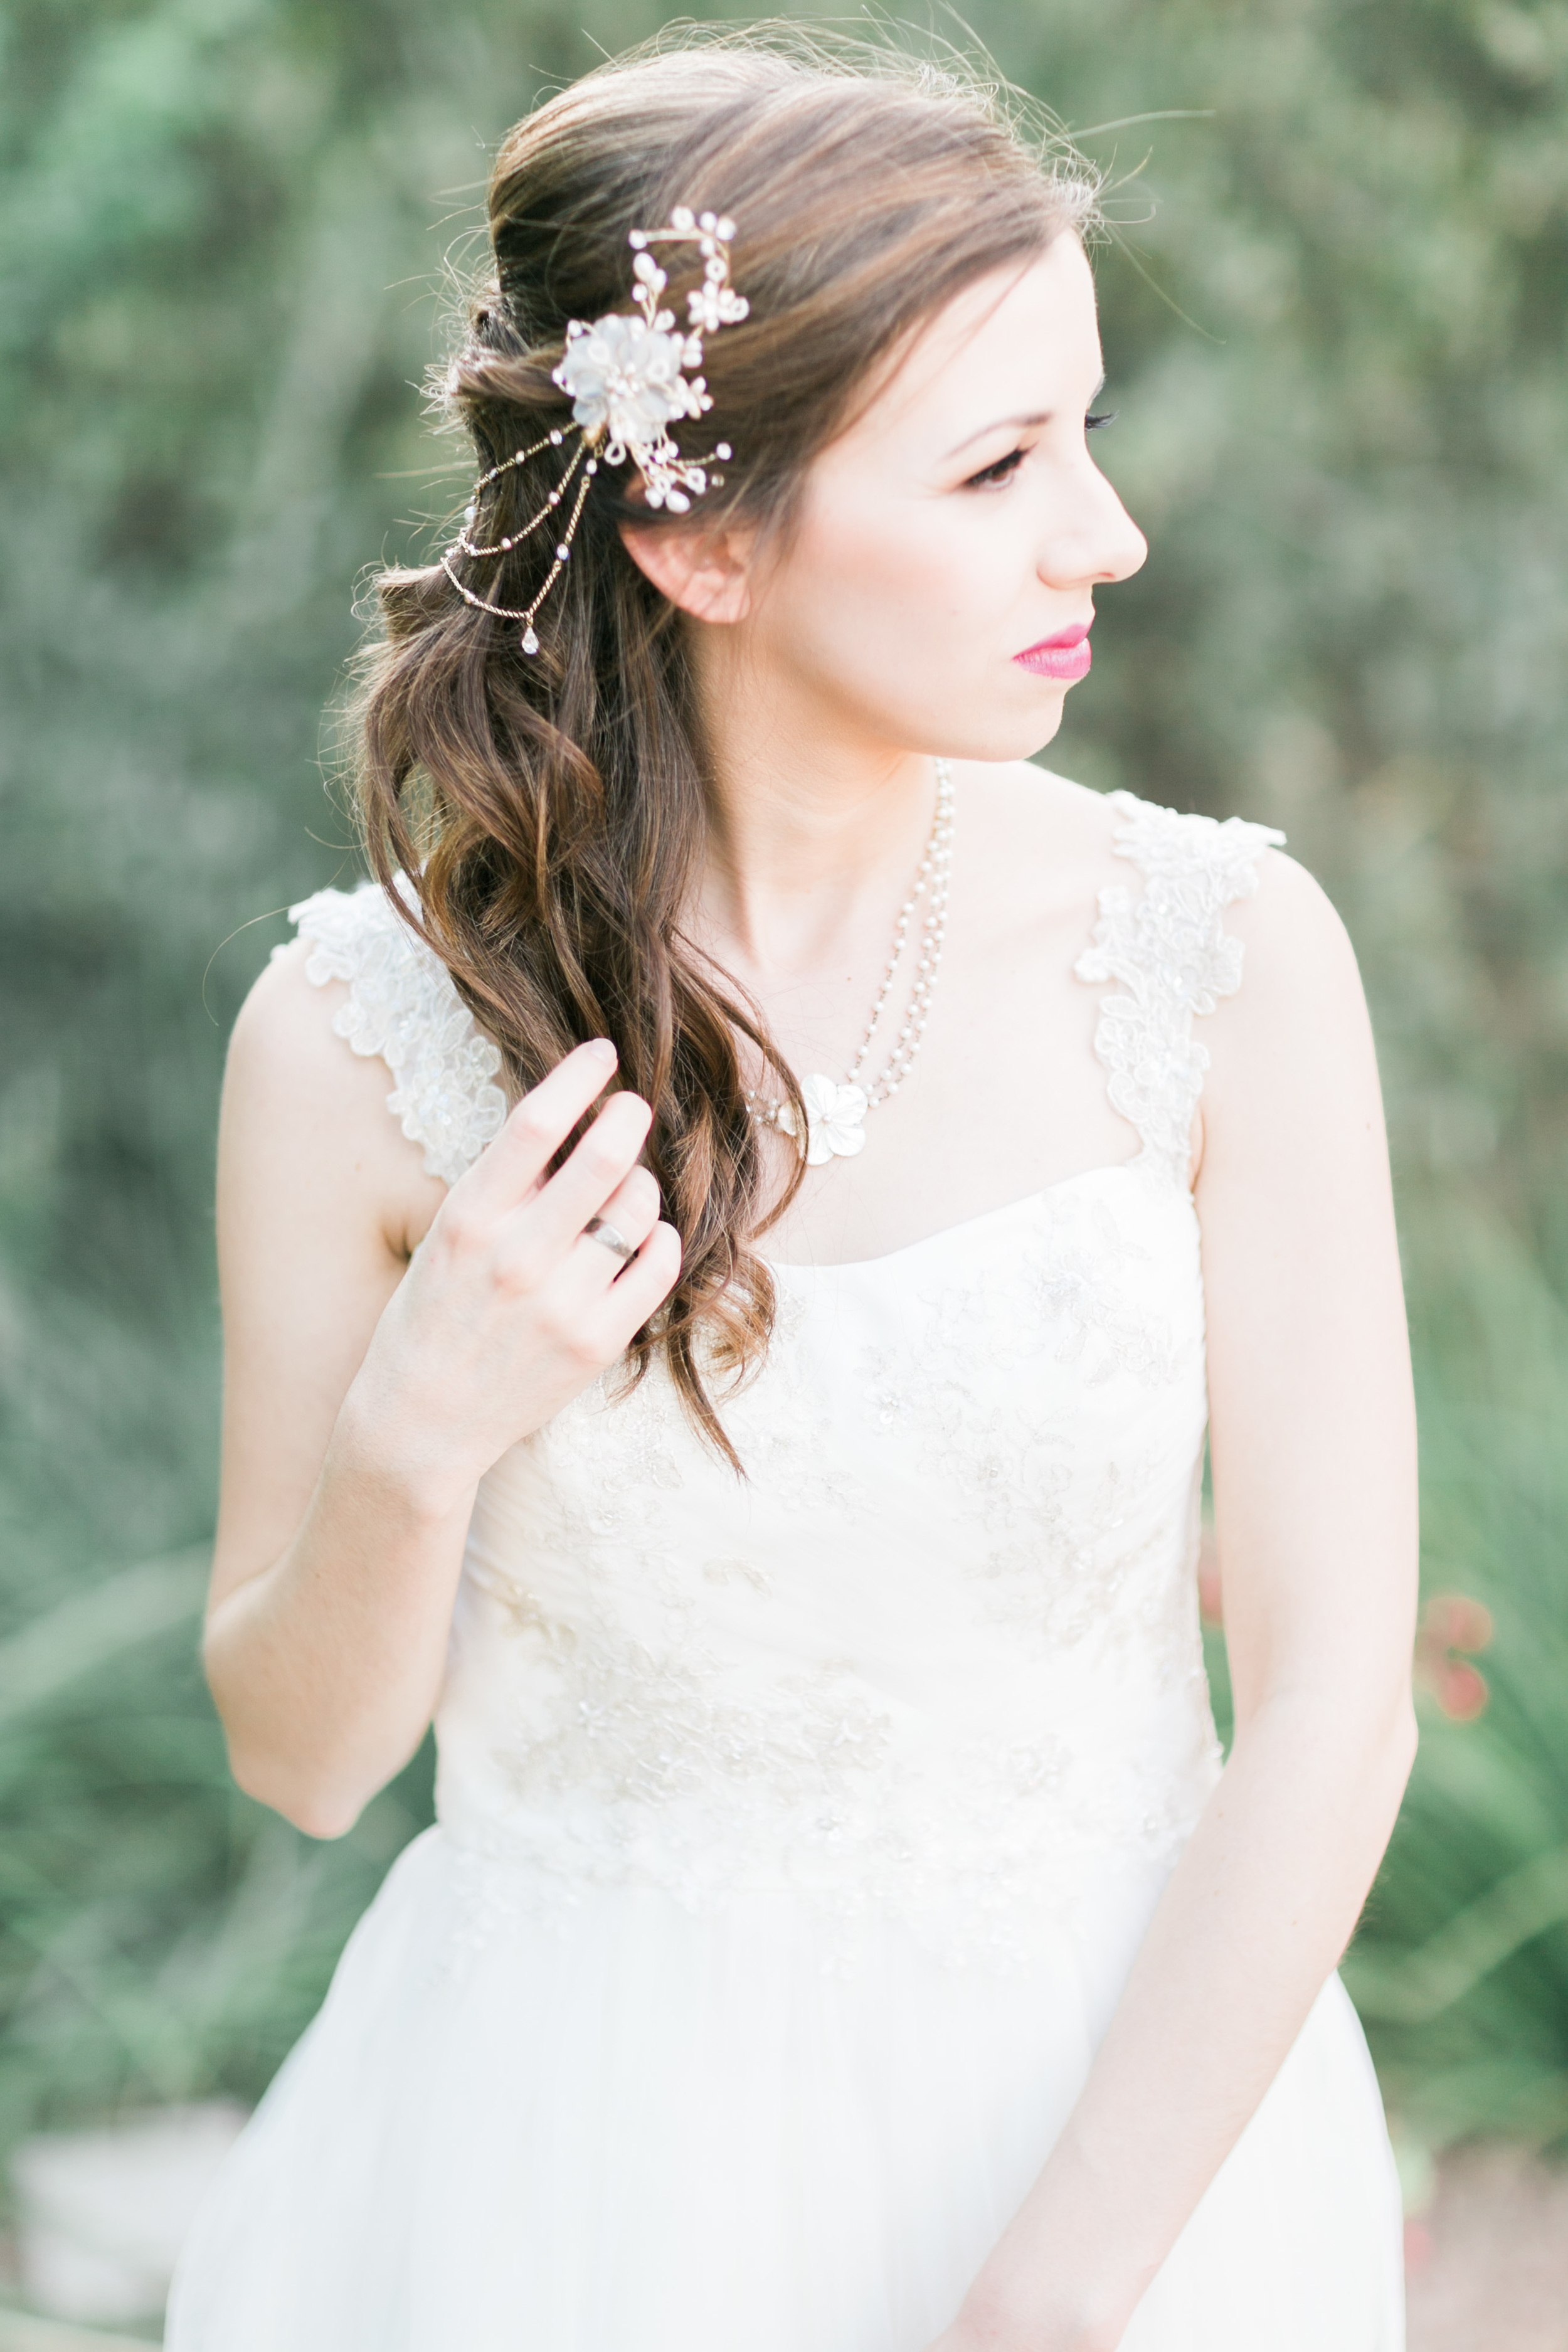 Beautiful bride with ornate floral hair clip